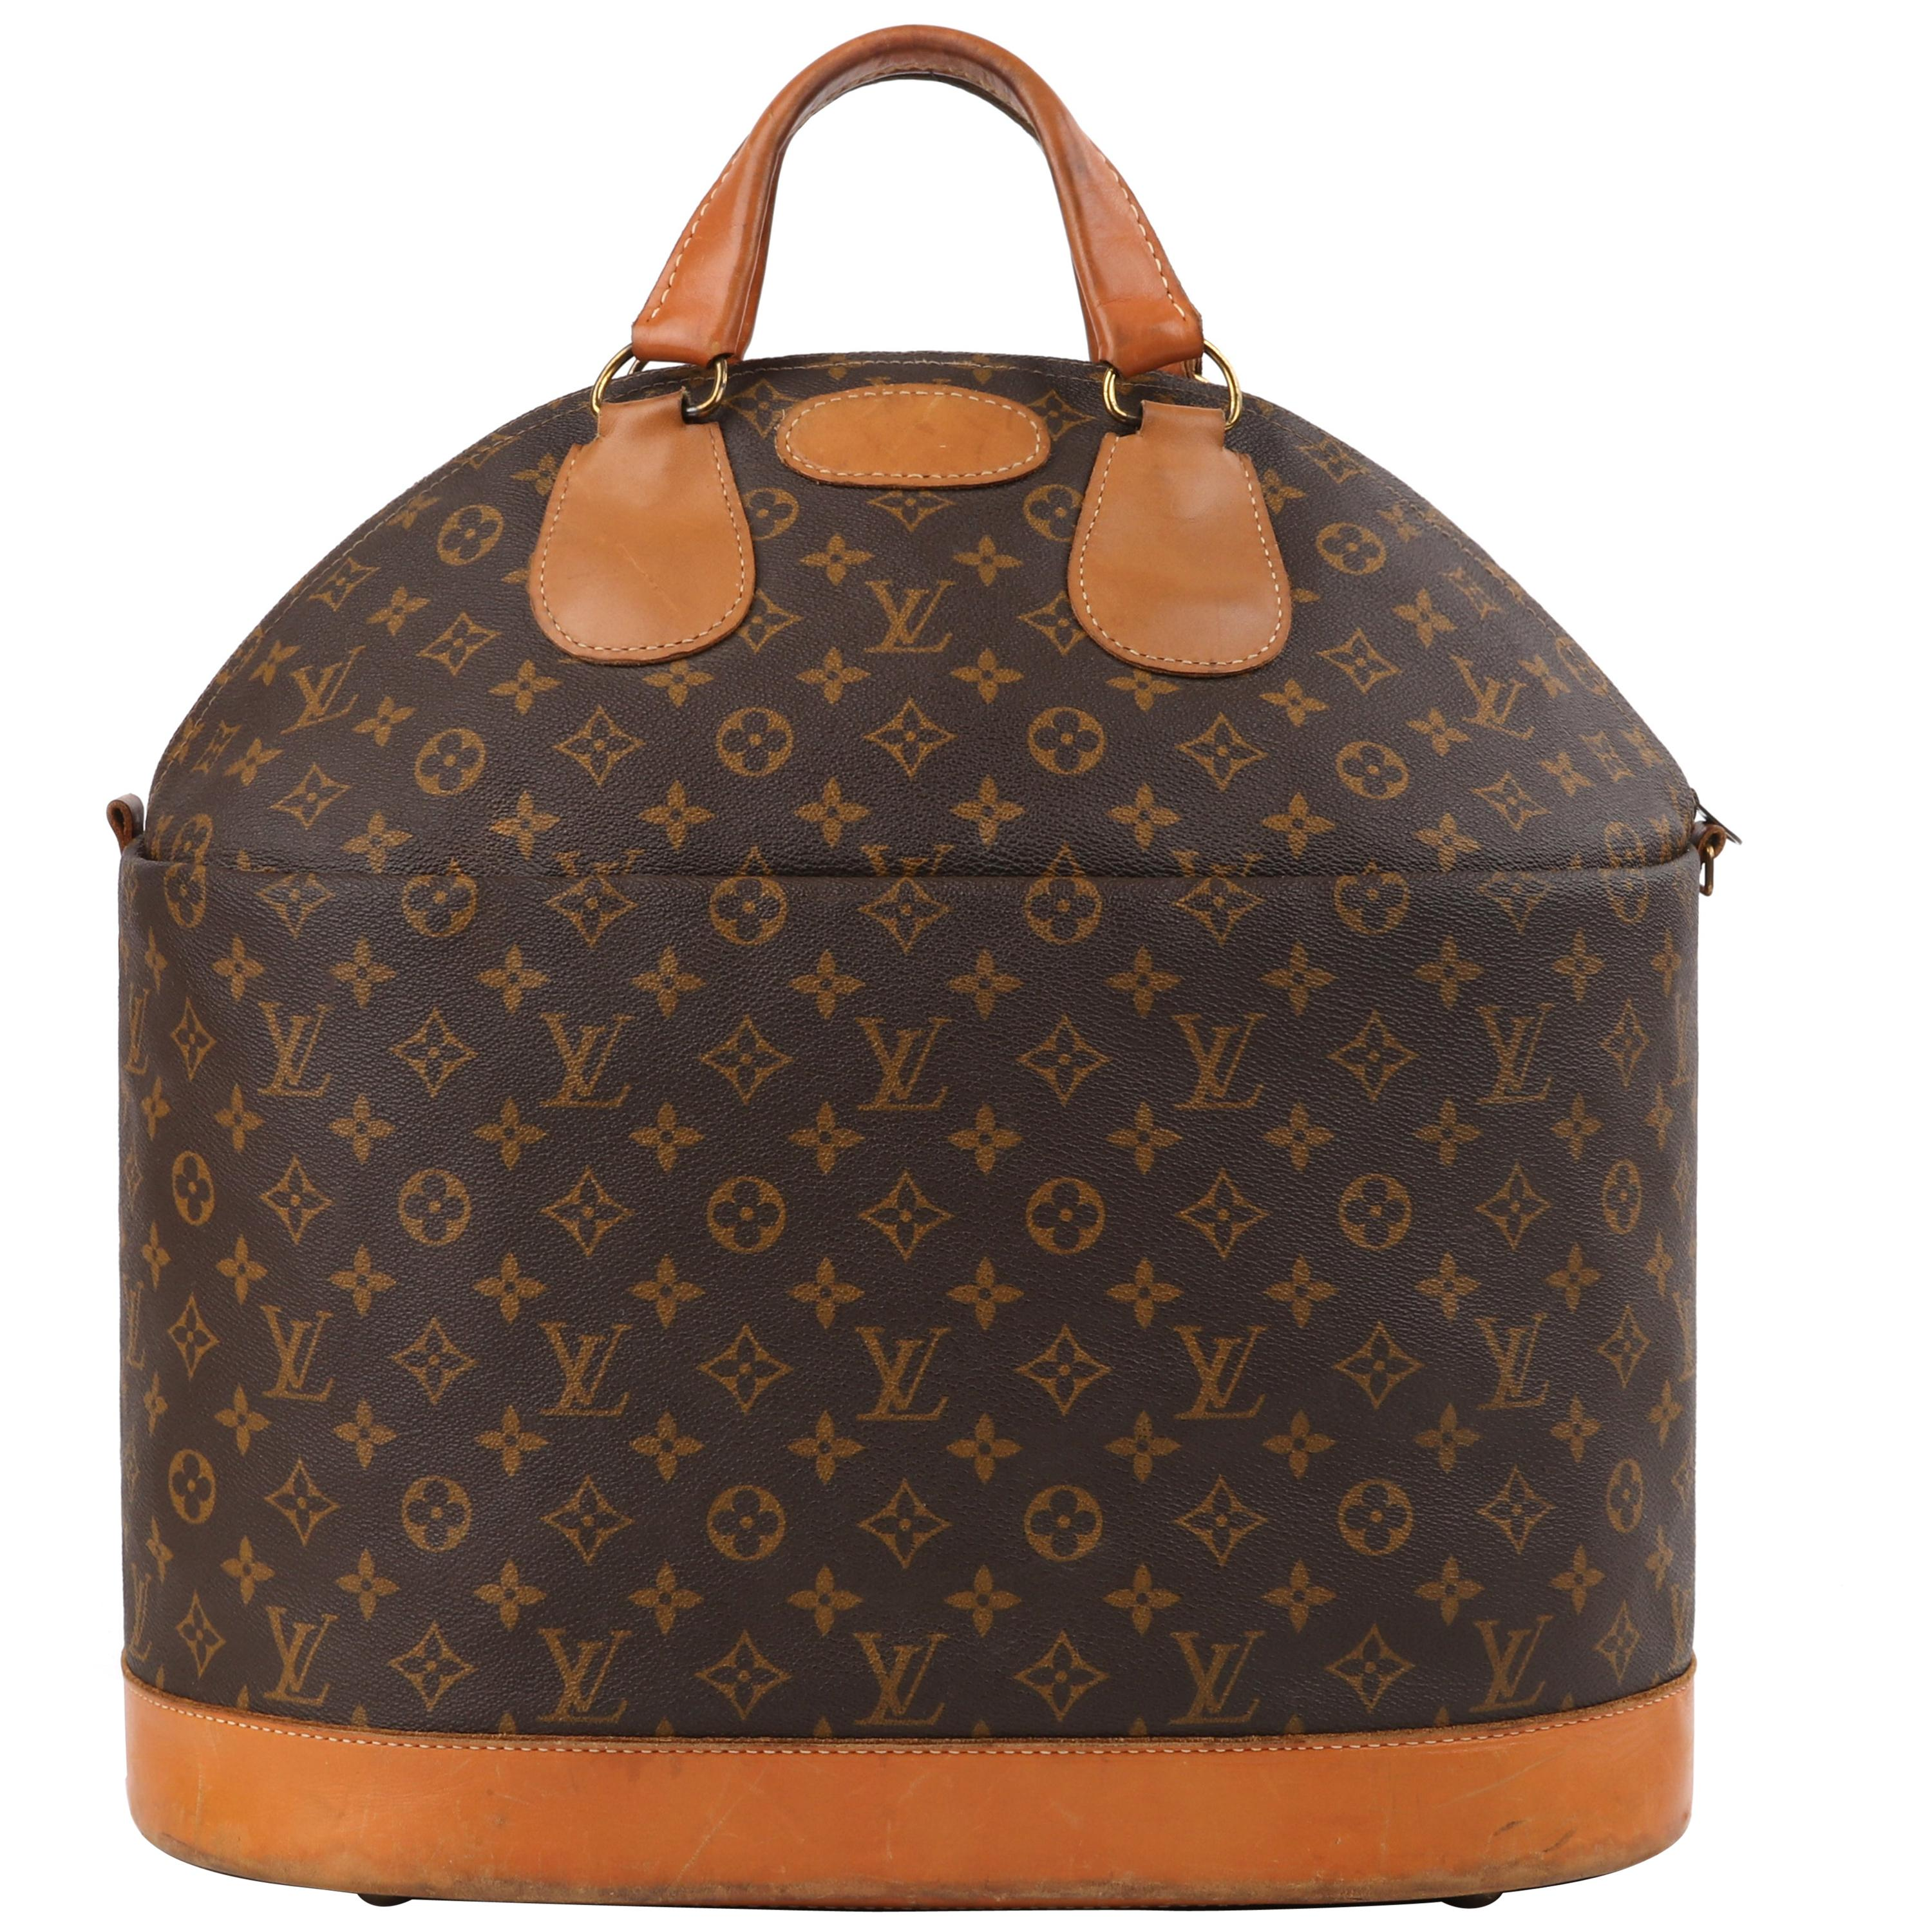 LOUIS VUITTON c.1970's LV Monogram Coated Canvas Top Handle Steamer Keepall Bag